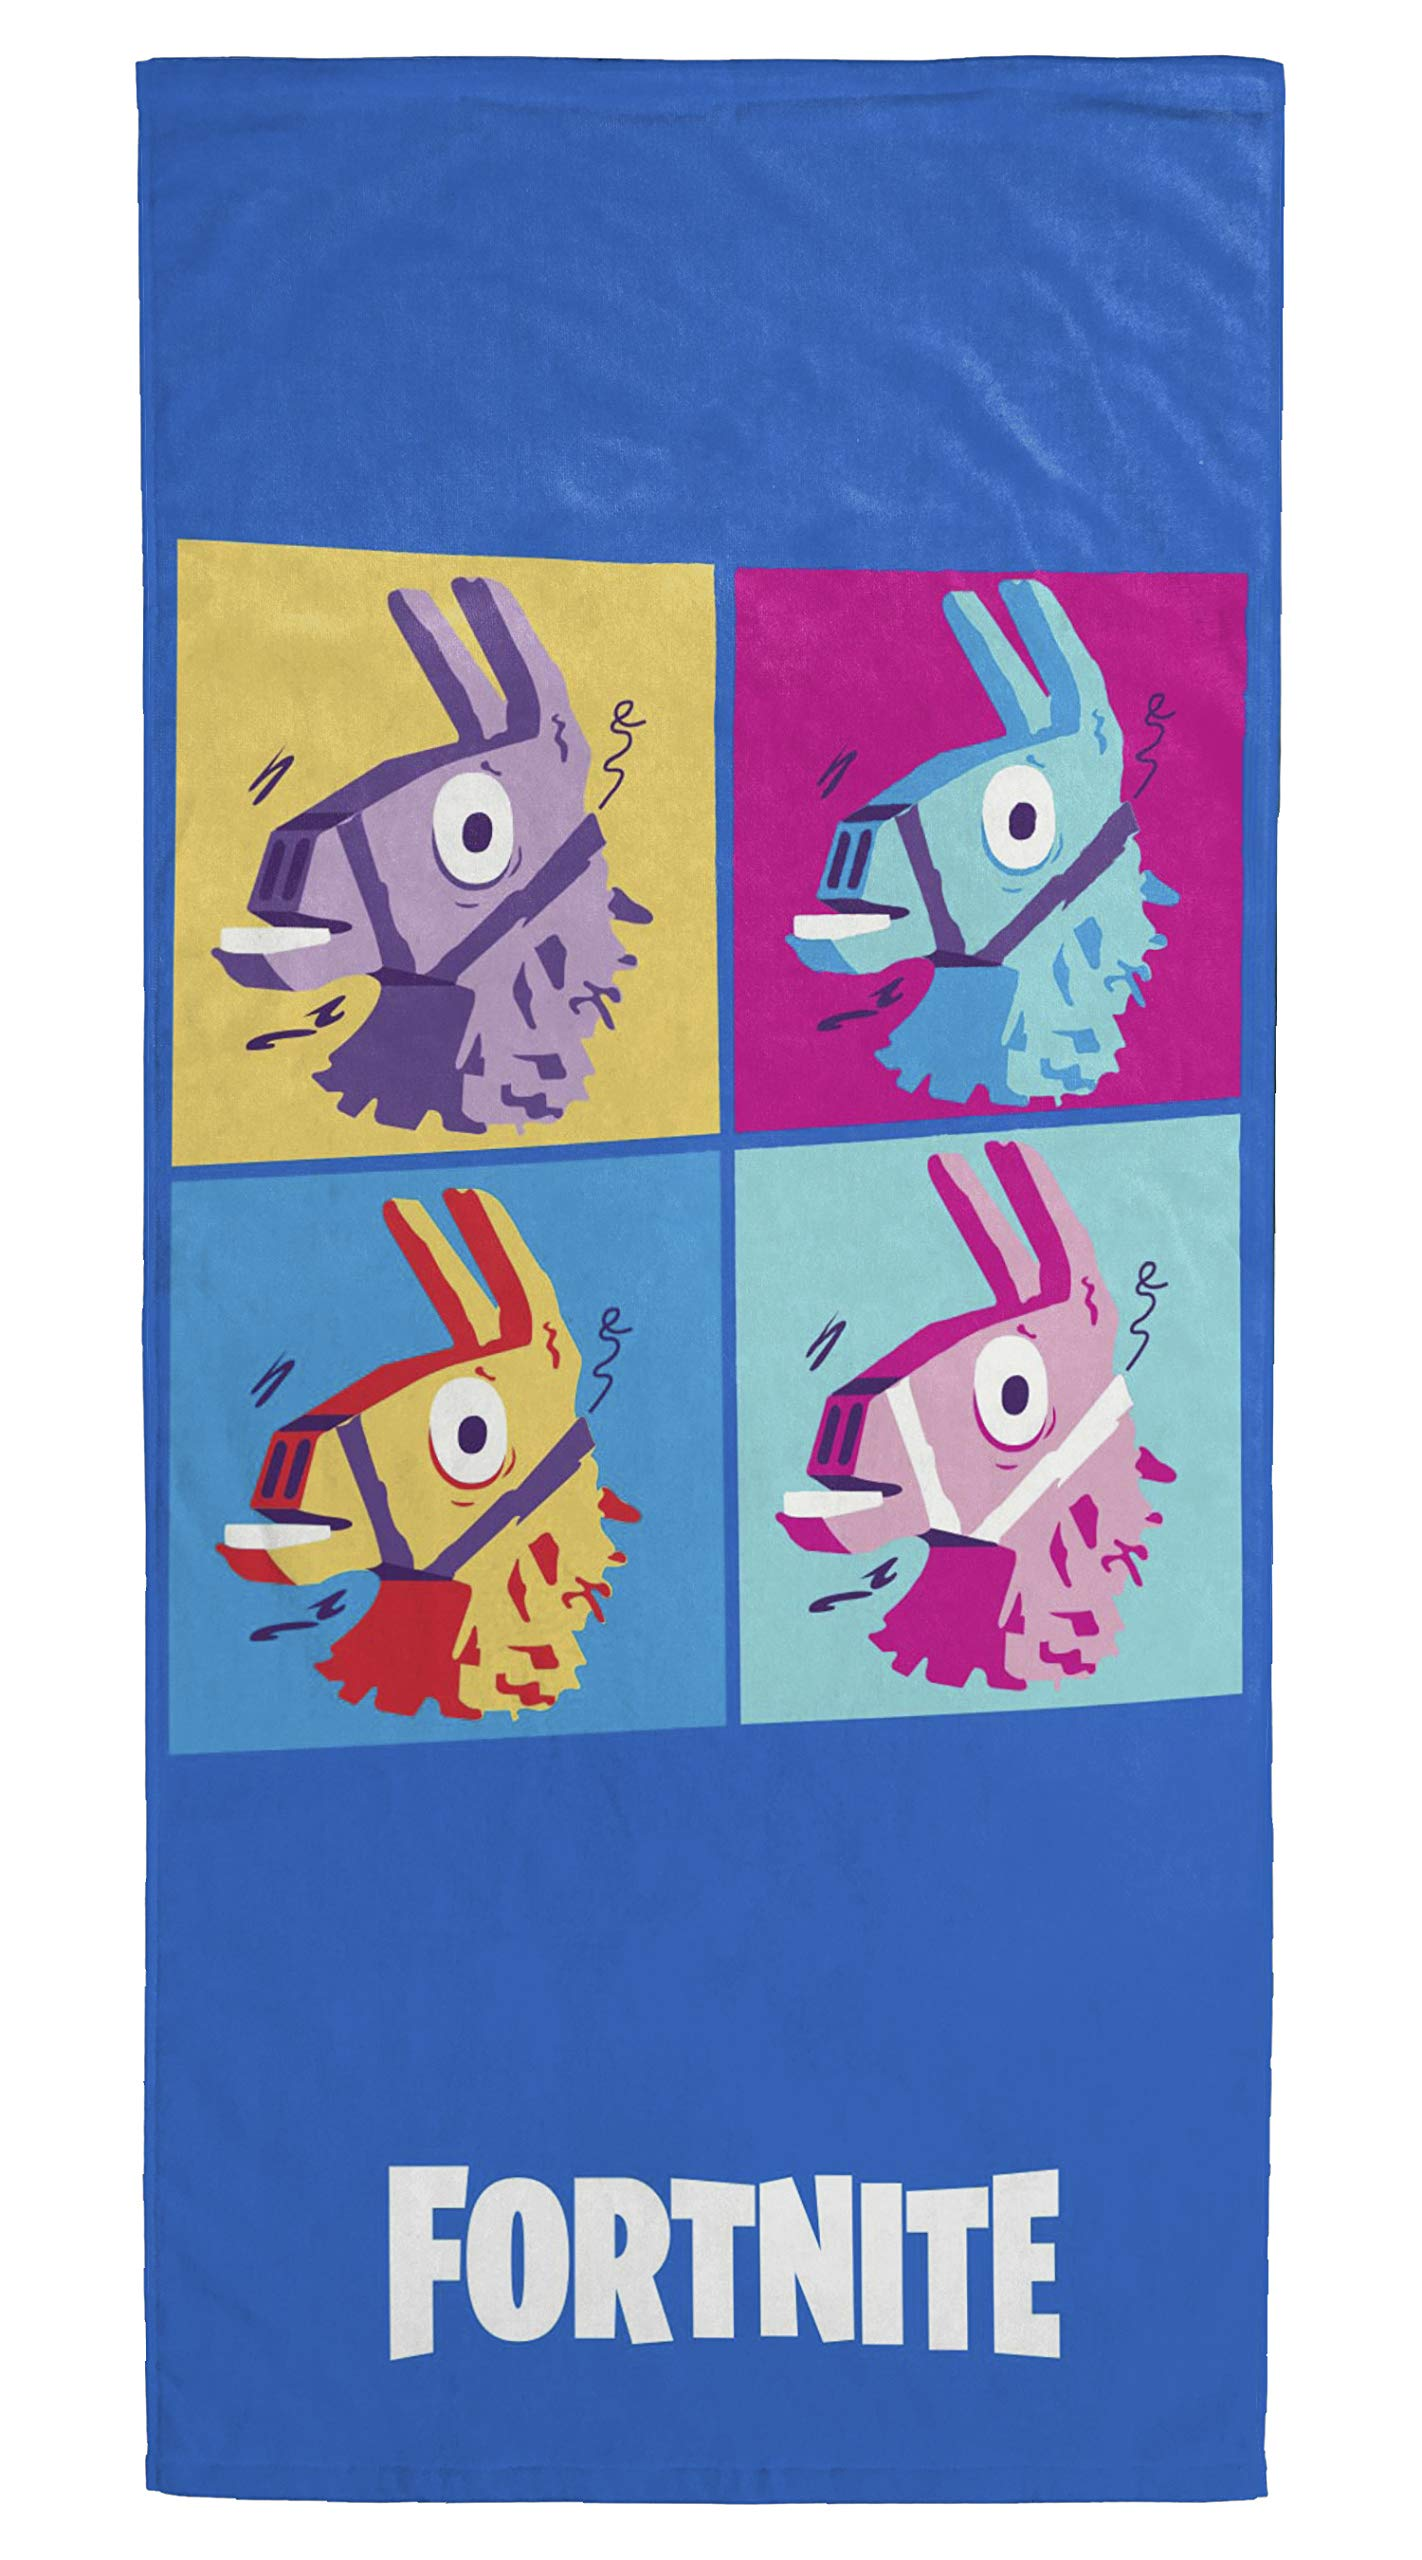 Jay Franco Fortnite Llama Warhol Kids Bath/Pool/Beach Towel - Super Soft & Absorbent Fade Resistant Cotton Towel, Measures 28 inch x 58 inch (Official Fornite Product) by Jay Franco